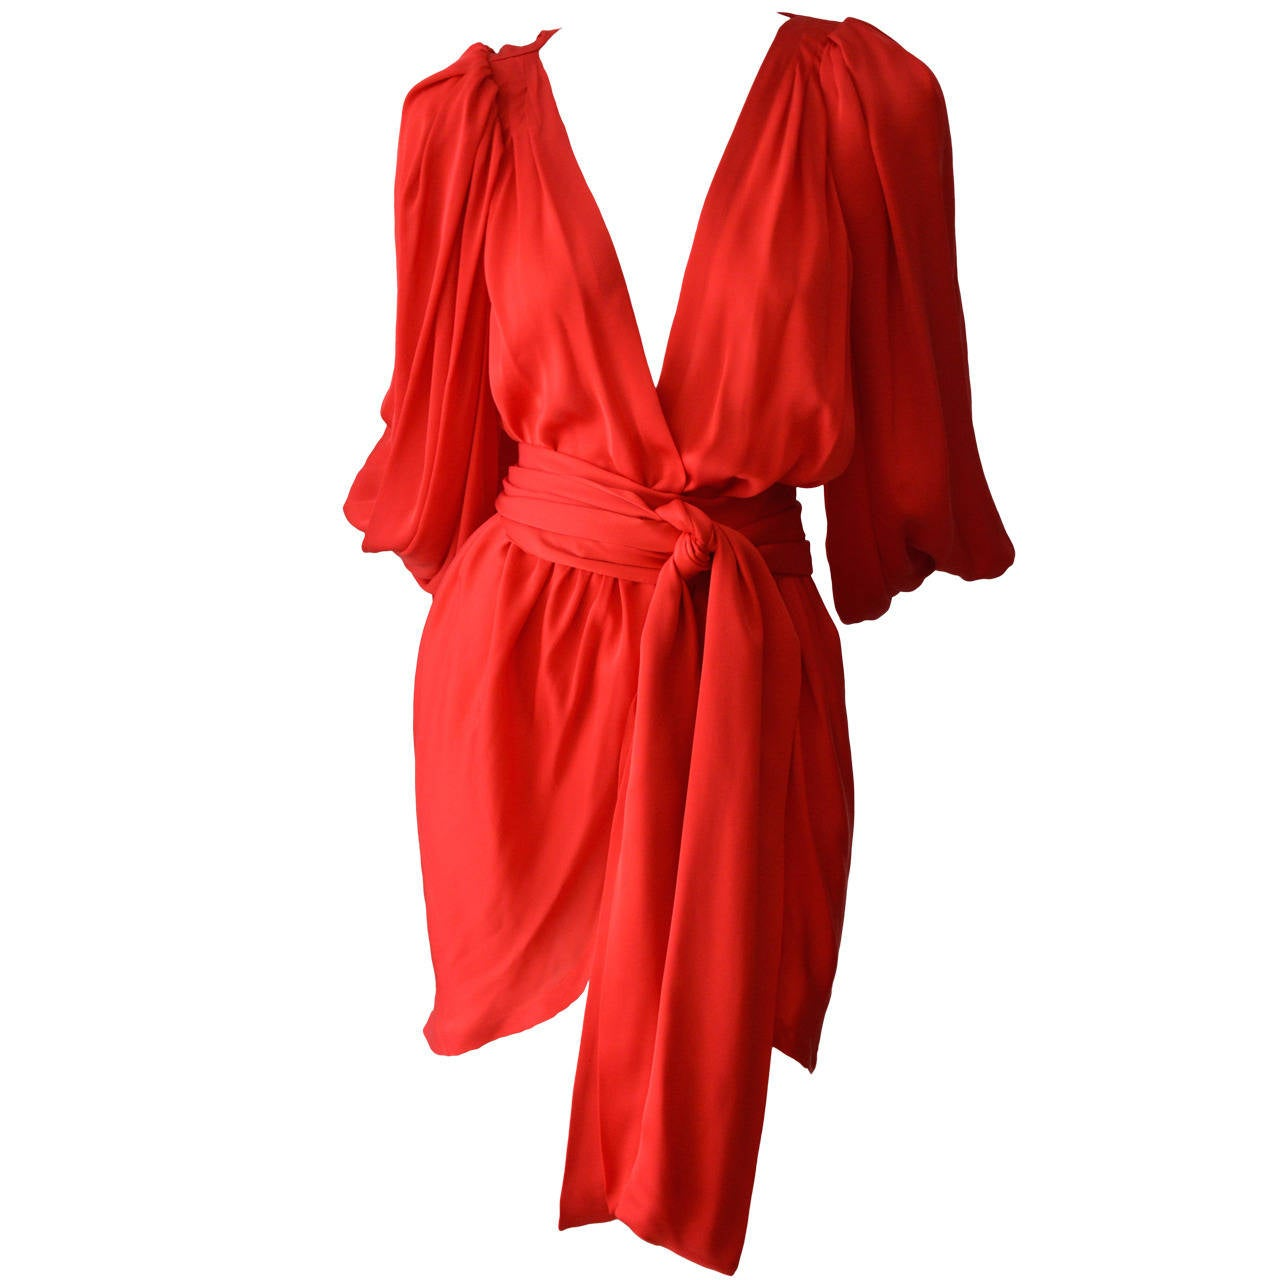 Iconic Yves Saint Laurent Silk Wrap Cocktail Dress At 1stdibs